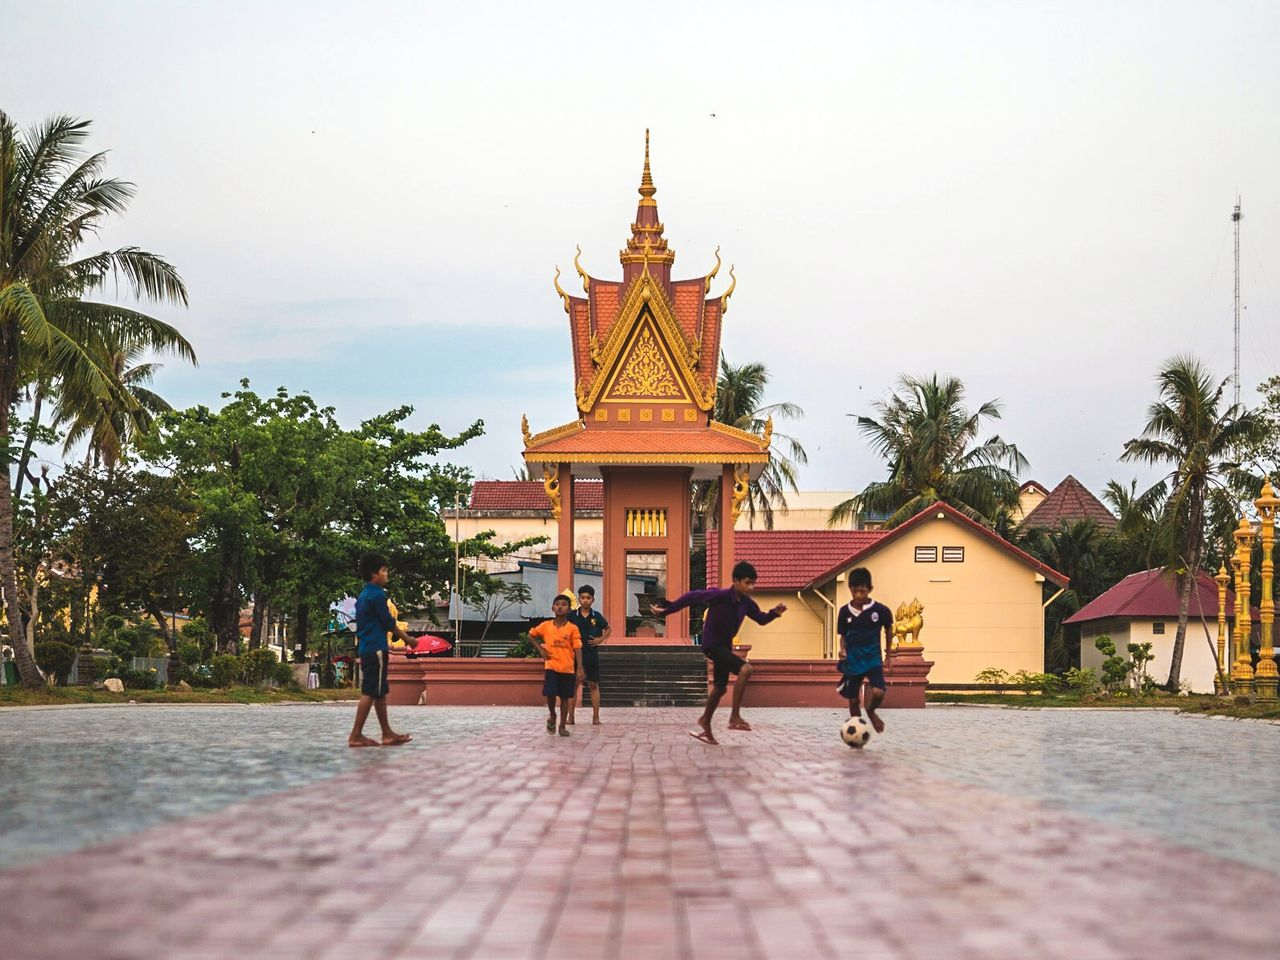 Tiebreaker Architecture Religion Travel Destinations History Tourism Gold Sky King - Royal Person Outdoors People Arts Culture And Entertainment Kids Kids Being Kids Playing Soccer Cambodia Real People ASIA Travel Photography Showcase: April Togetherness Lifestyles City Real Life Happiness